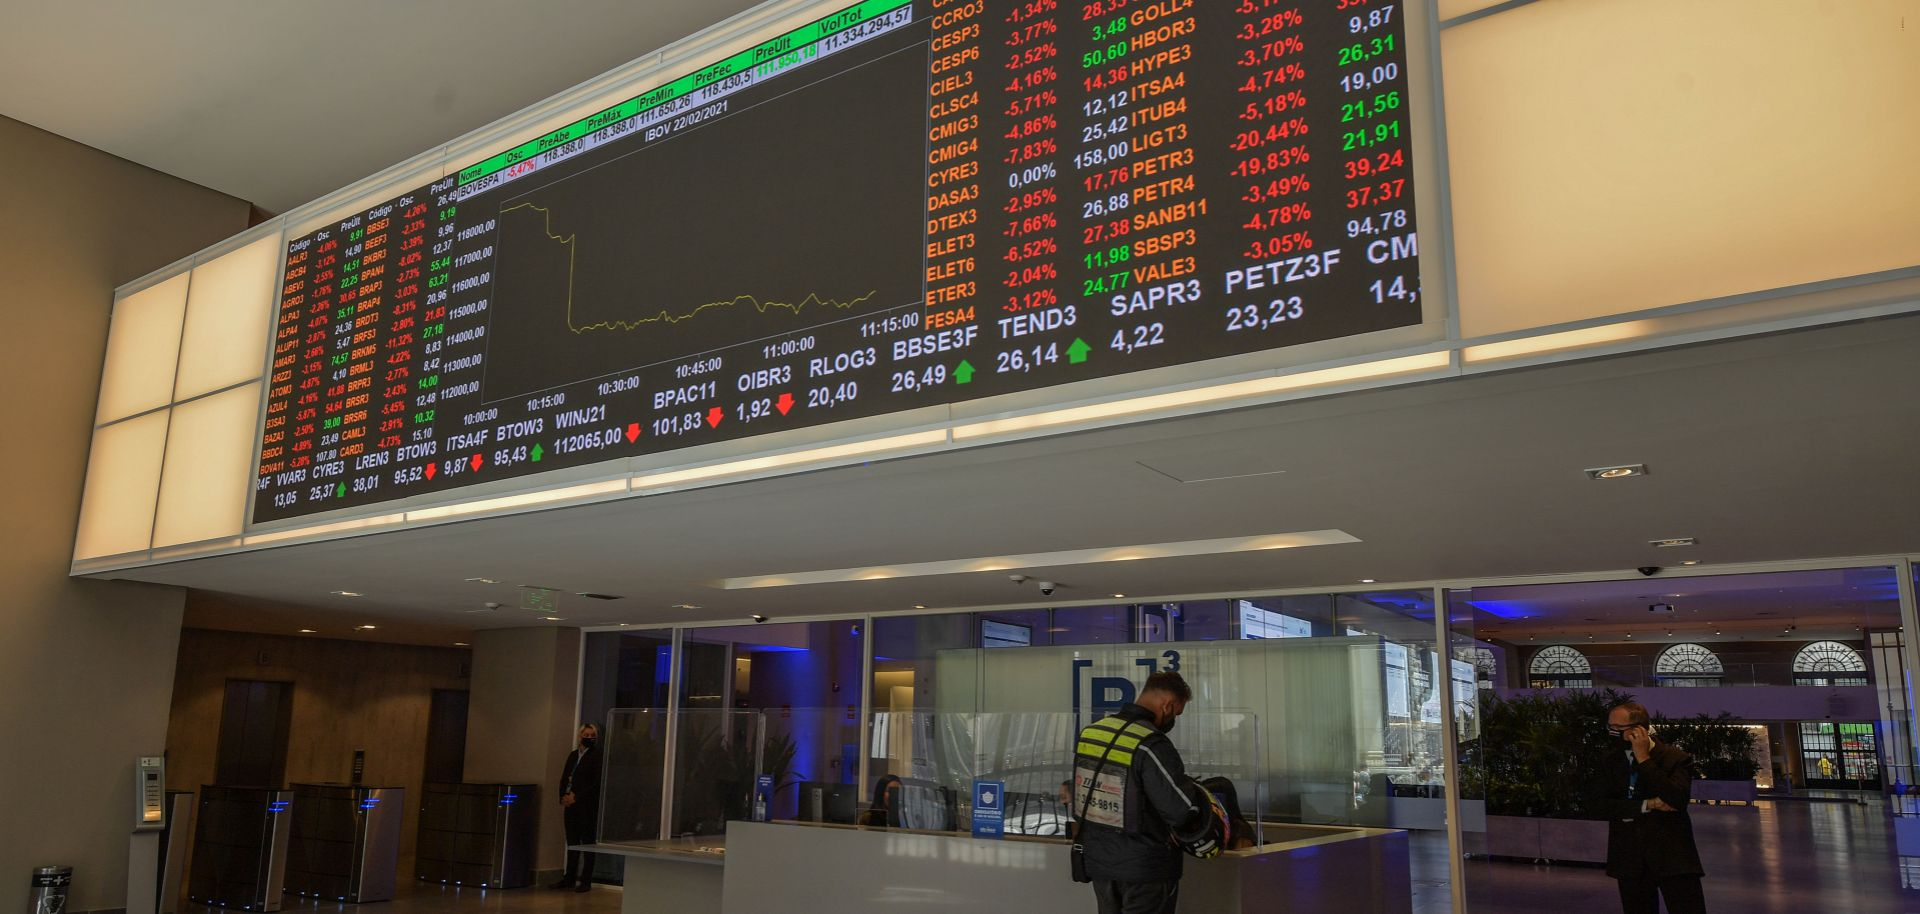 An electronic board shows the index chart at the Sao Paulo Stock Exchange after shares in Brazilian state oil giant Petrobras plunged amid news of a leadership shake-up on Feb. 22, 2021.